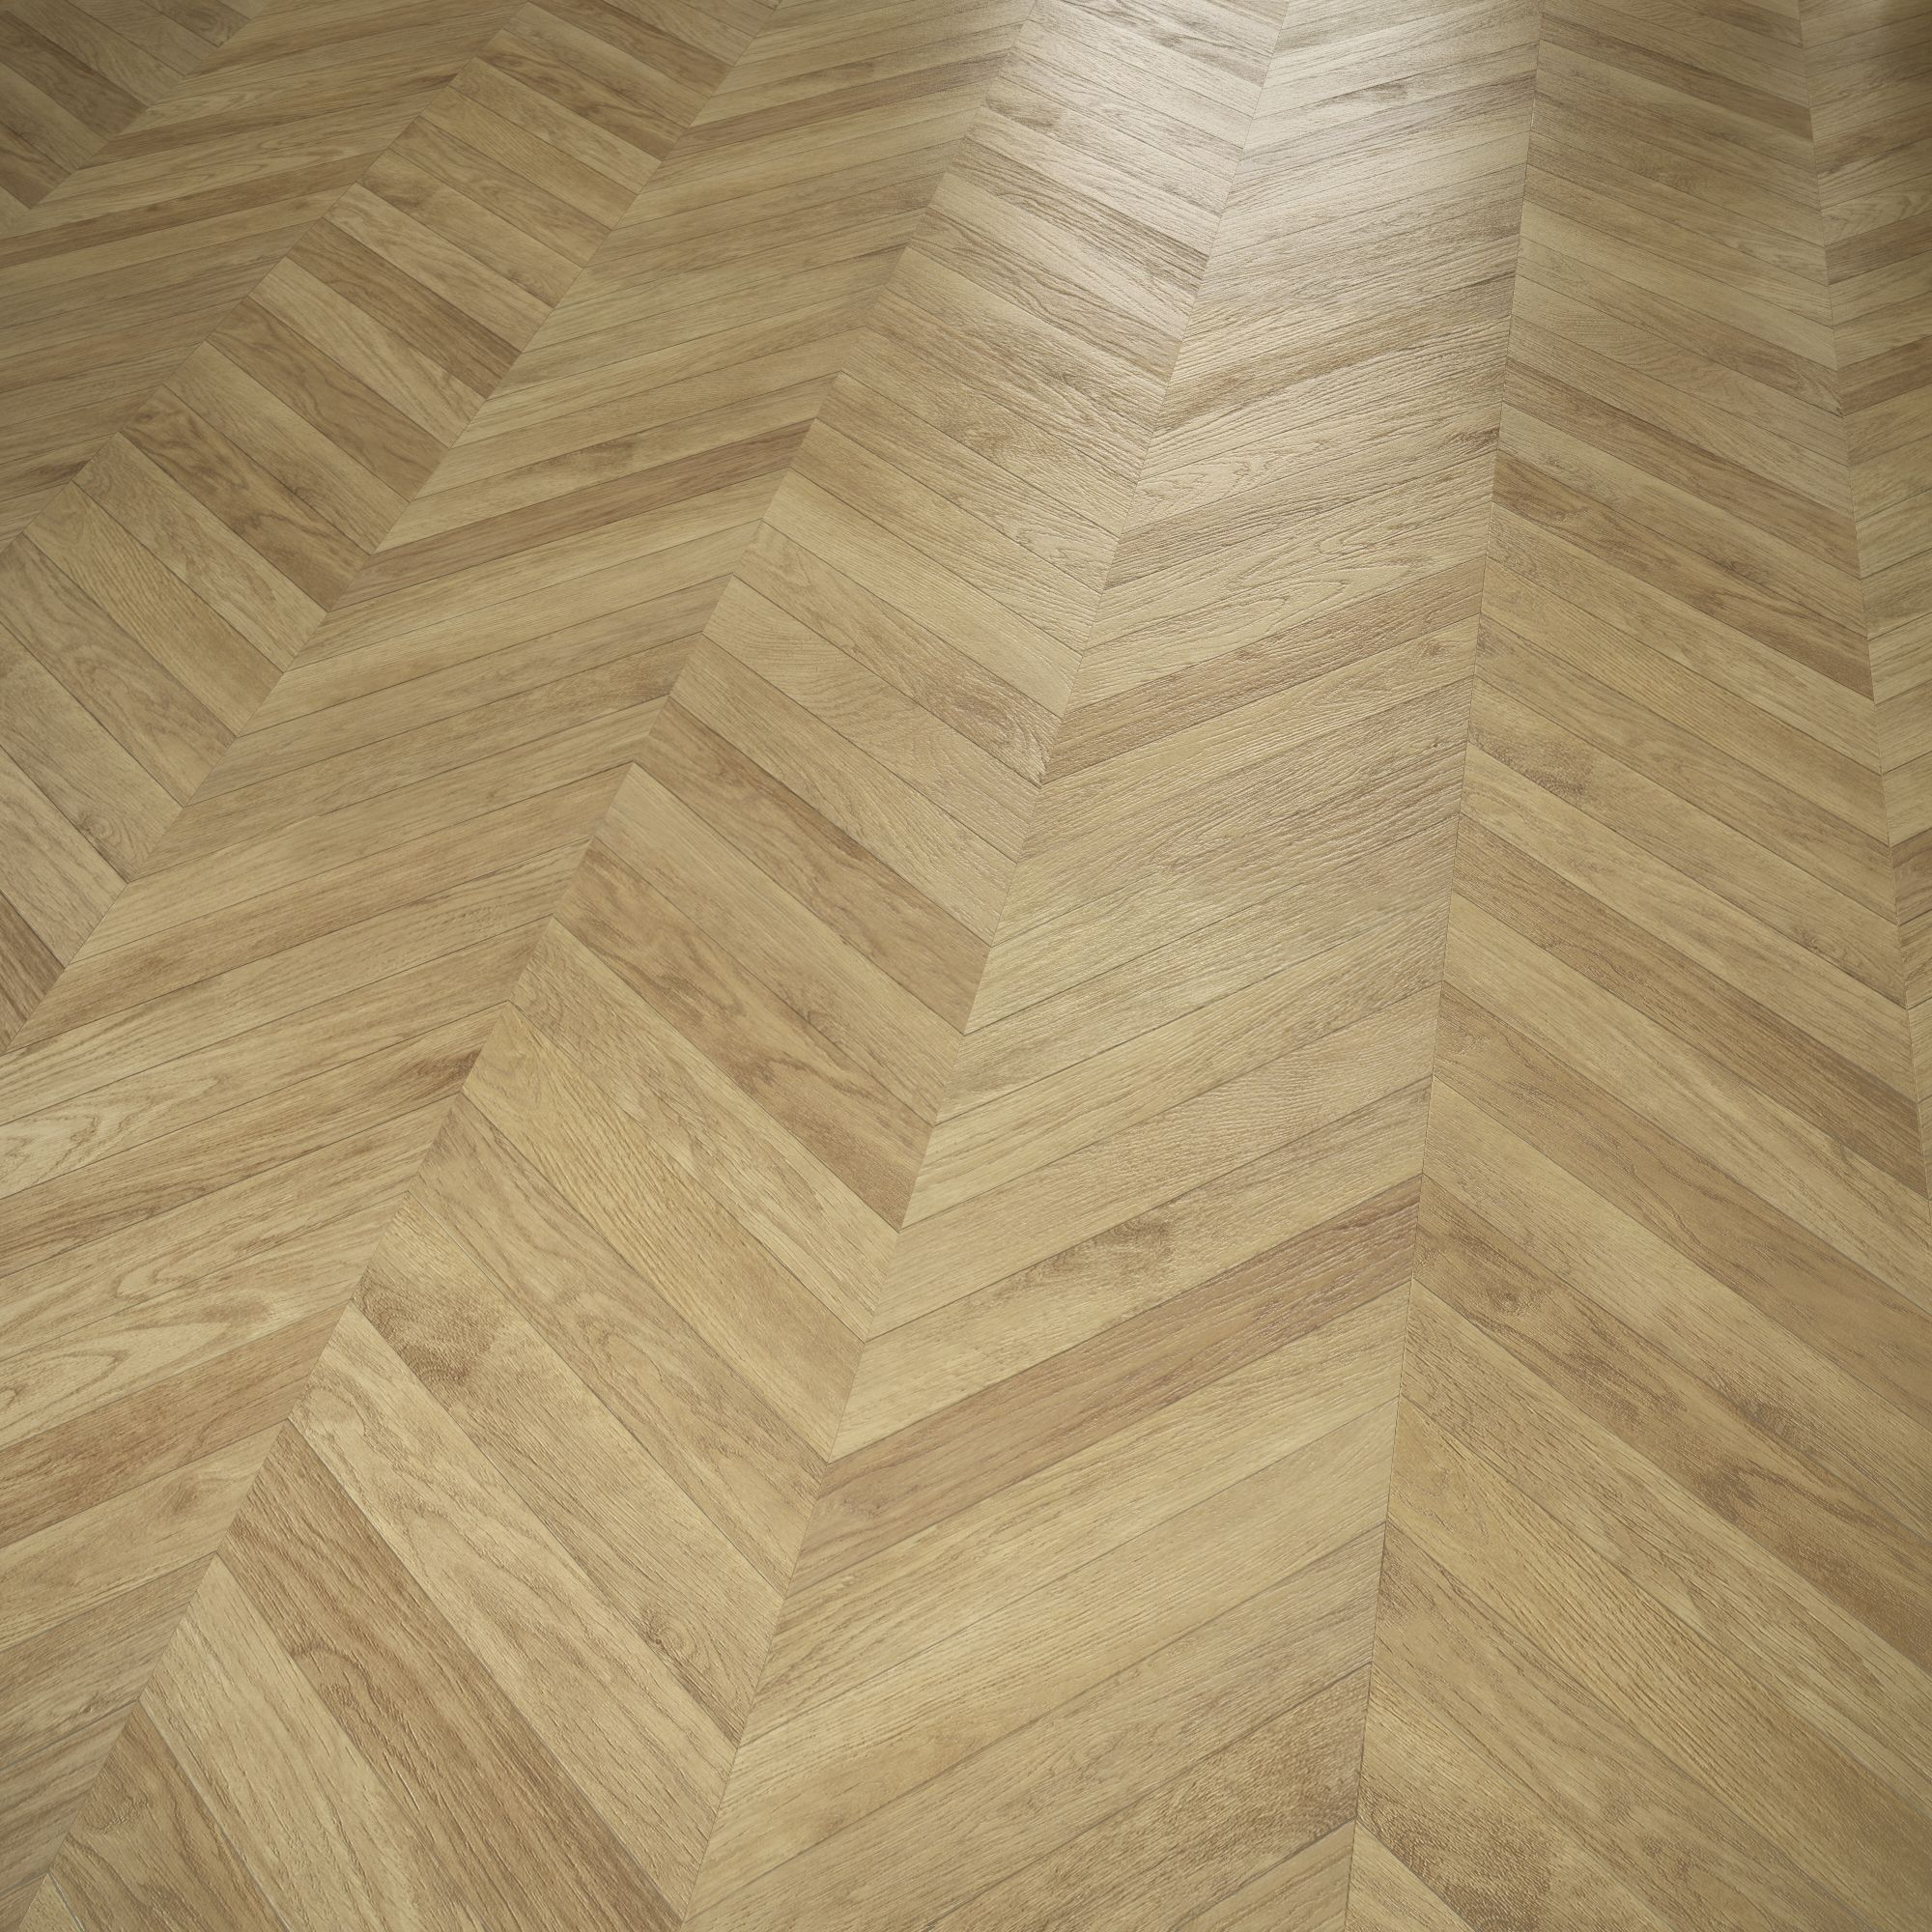 Alessano Herringbone Oak Effect Laminate Flooring 1 39 M² Pack Departments Diy At B Q